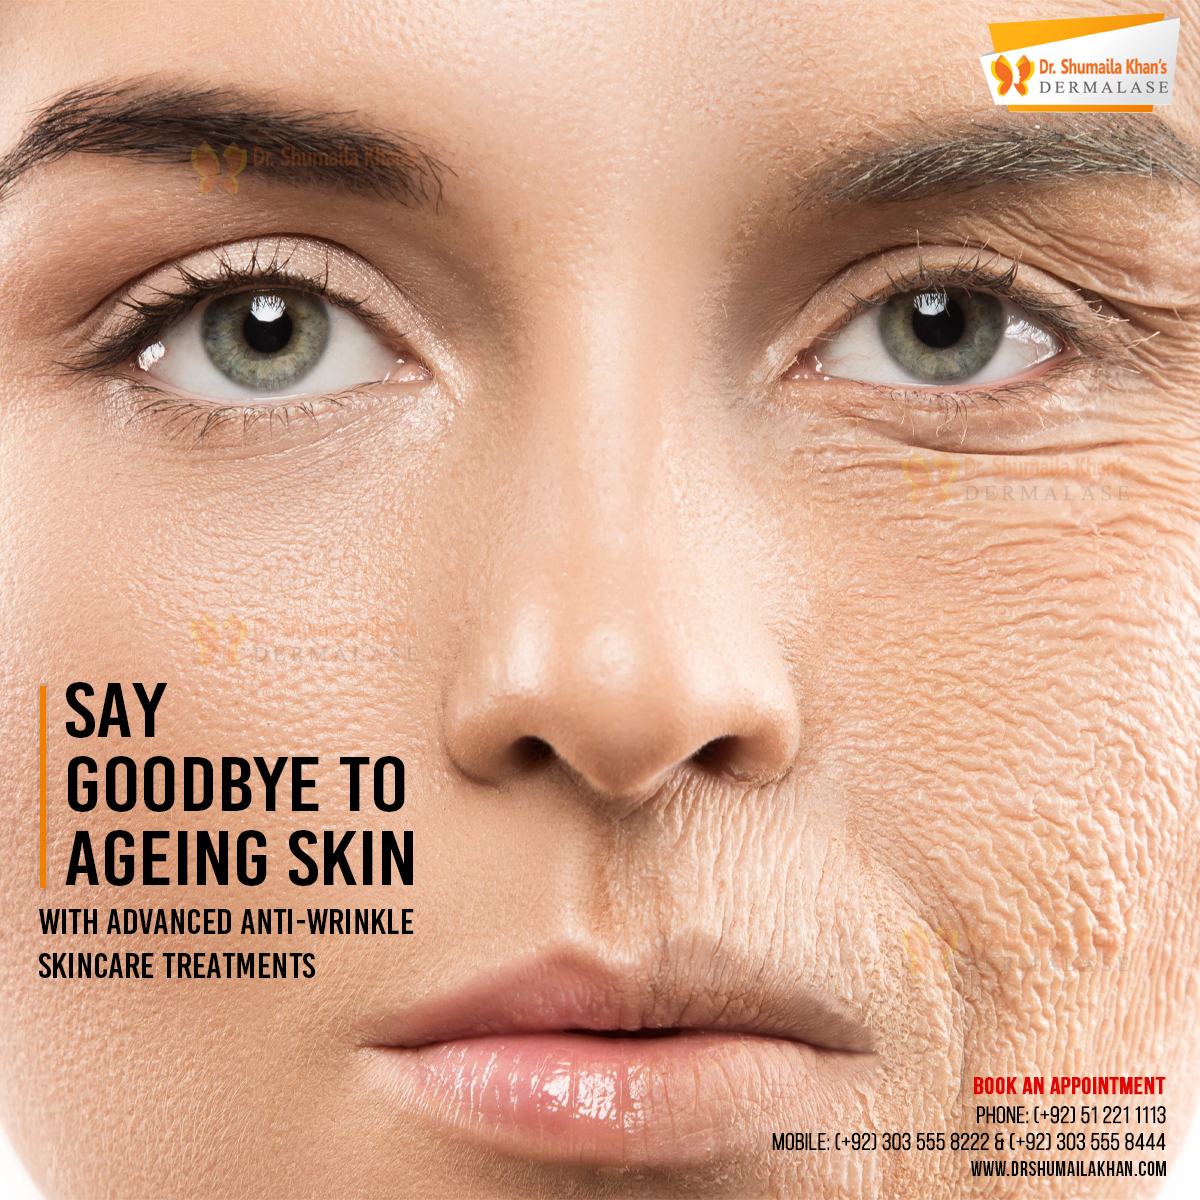 Say Goodbye To Ageing Skin In 2020 Skin Care Treatments Dermatologist Skin Specialist